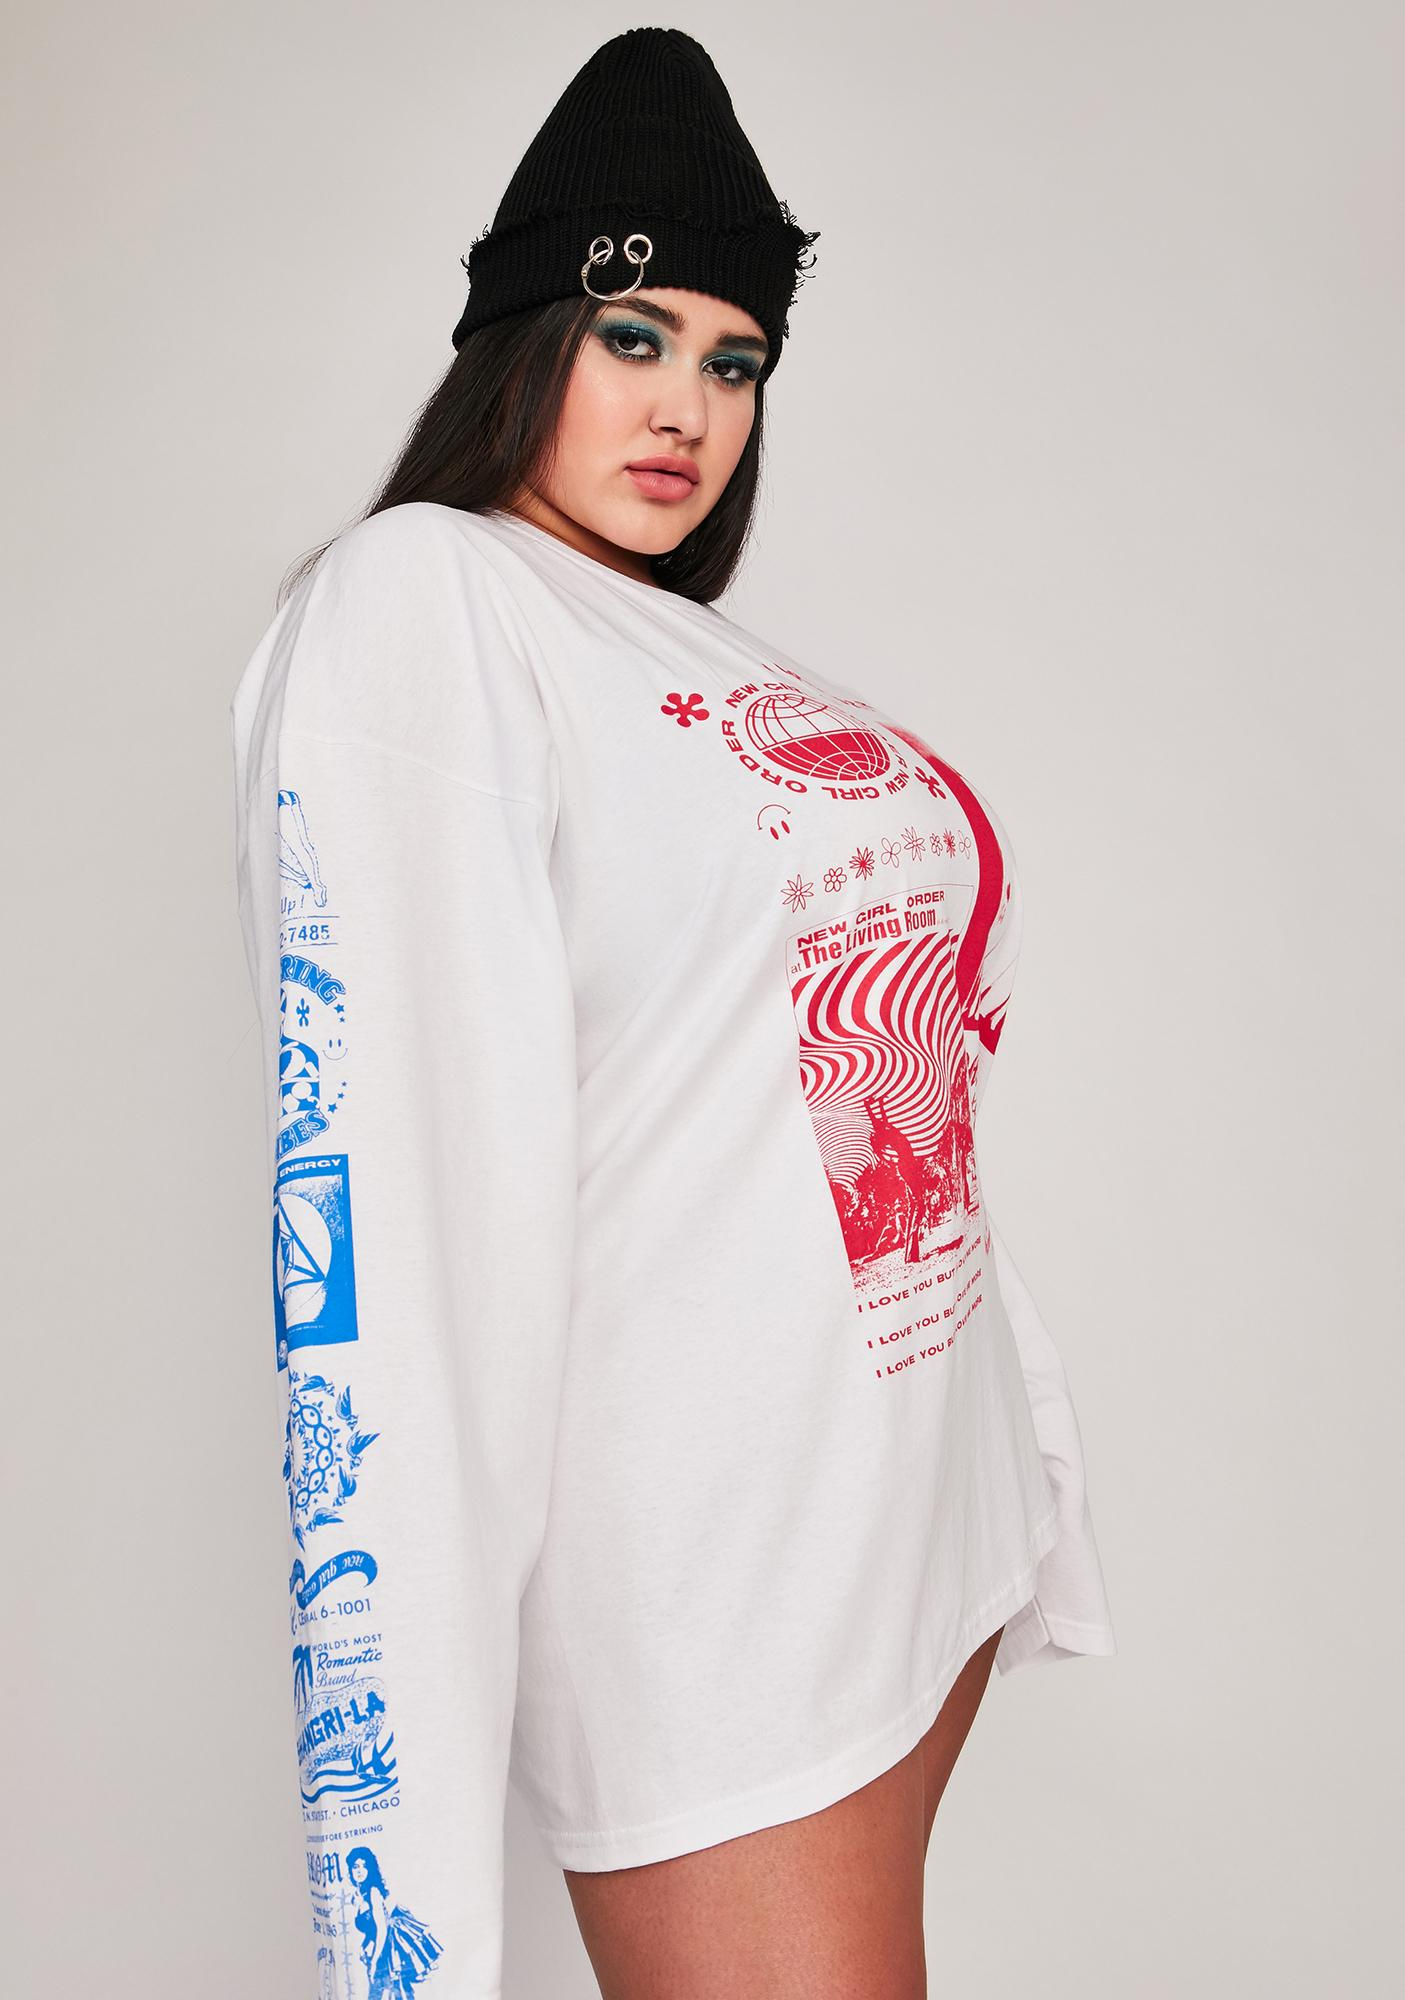 NEW GIRL ORDER Atomic Rave Flyer Long Sleeve Graphic Tee